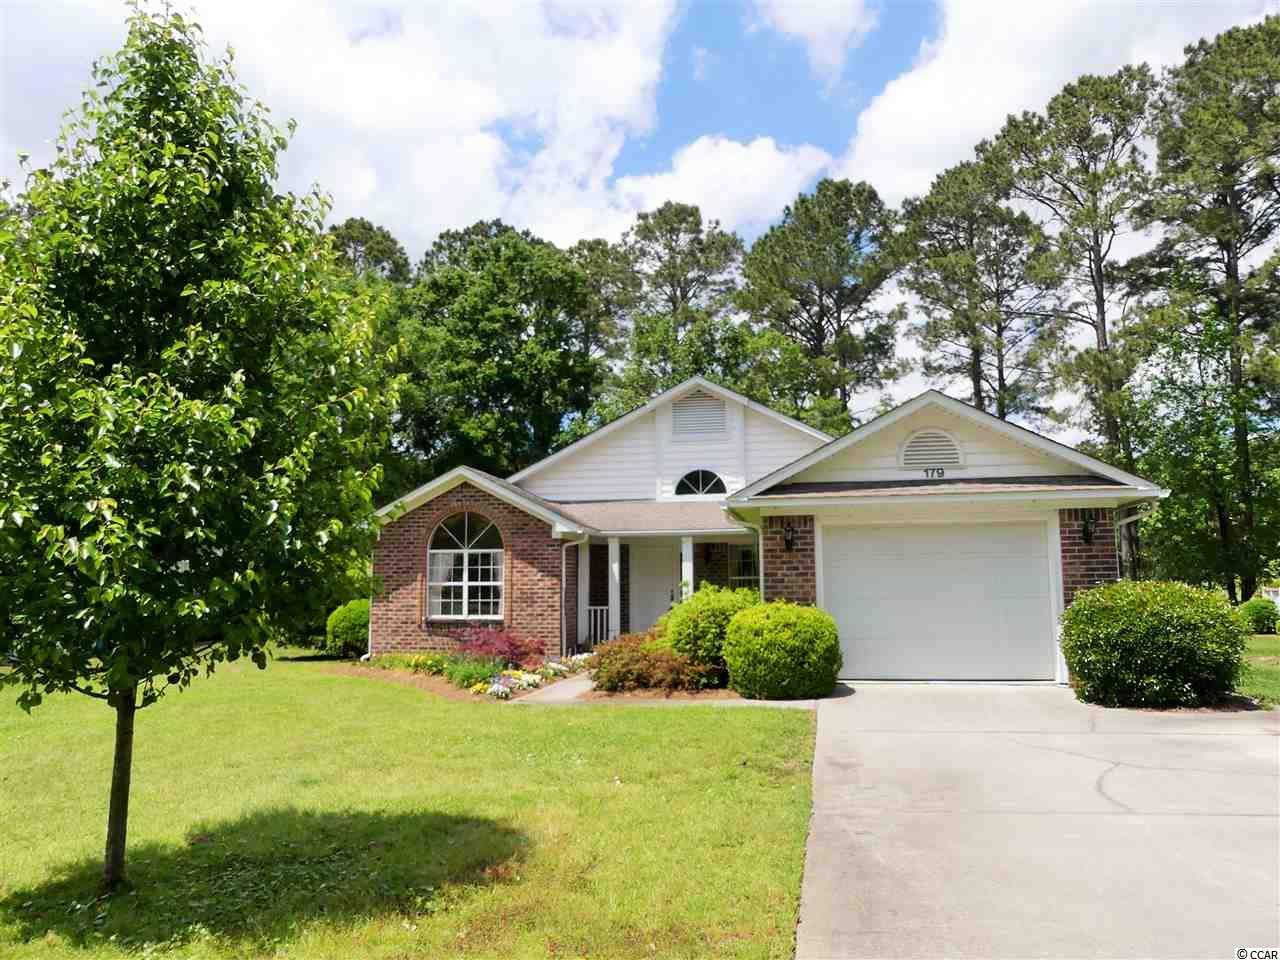 Immaculate home in the sought after River Club community of Pawleys Island, SC ! The all brick house at 179 Mackinley Circle features an open floor plan, 2 spacious bedrooms, an incredibly large sun-room area, an over-sized 1 car garage, a clean white kitchen with granite counters, and a rear porch area overlooking the golf course. The River Club is a gated community located less than 2 miles to the ocean and houses an 18 hole golf course, tennis courts, pool, a full club house, and private beach access through Litchfield by the Sea.